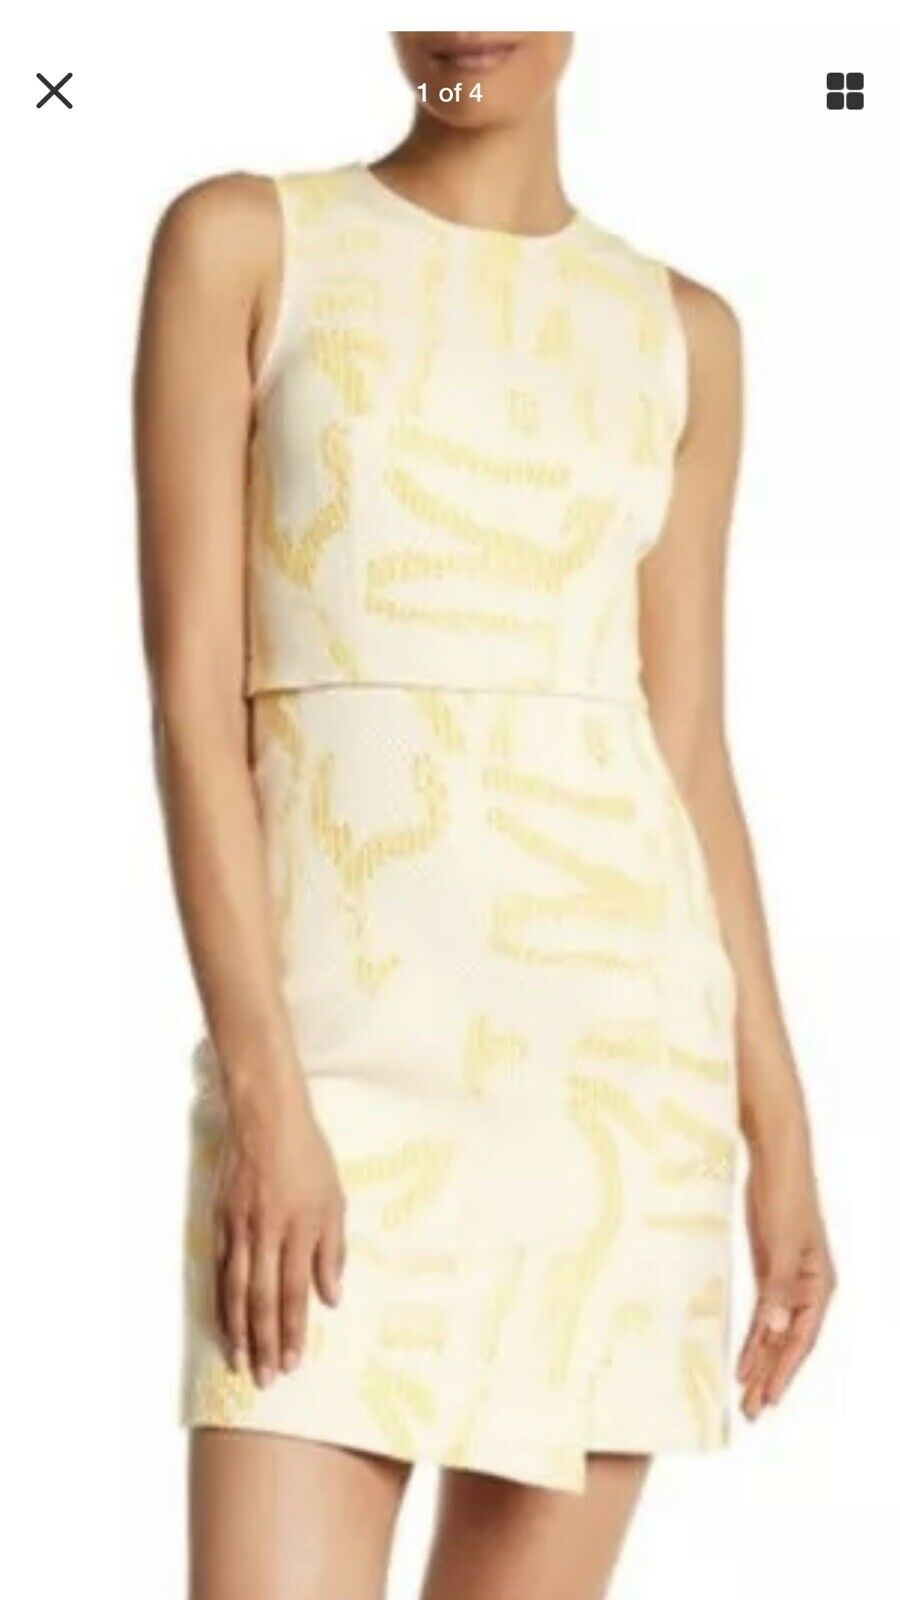 Jason Wu Dress Tweed Bone Multi Gelb Farbeblock Print Dress Woherren 4